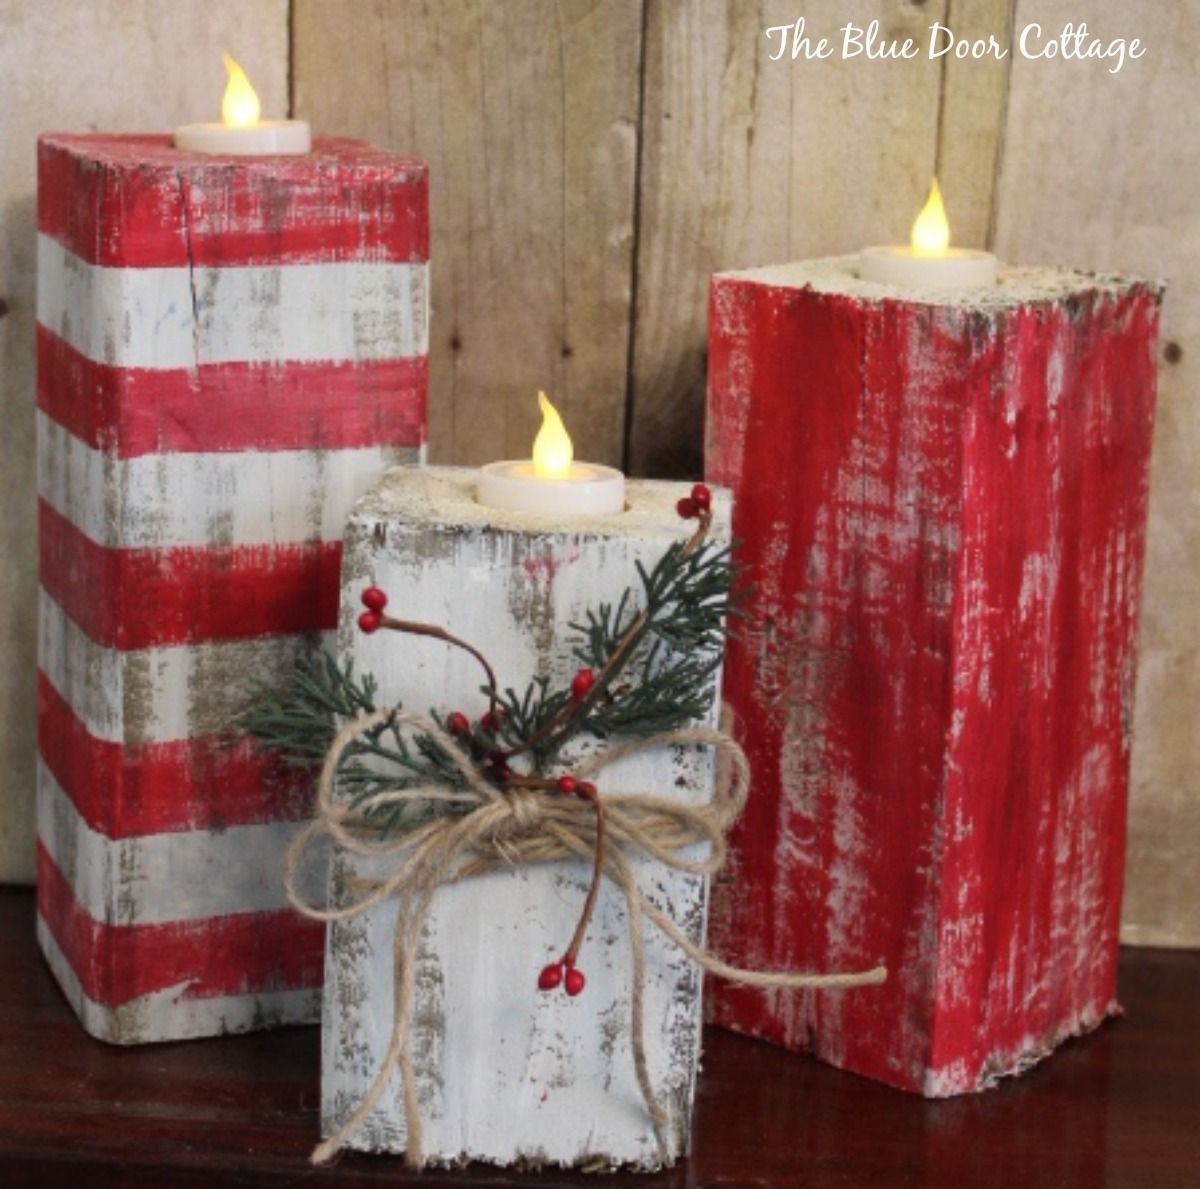 Wooden candle holders crafts - Candy Cane Rustic Wood Candles By The Everyday Home 18 Set At The Blue Door